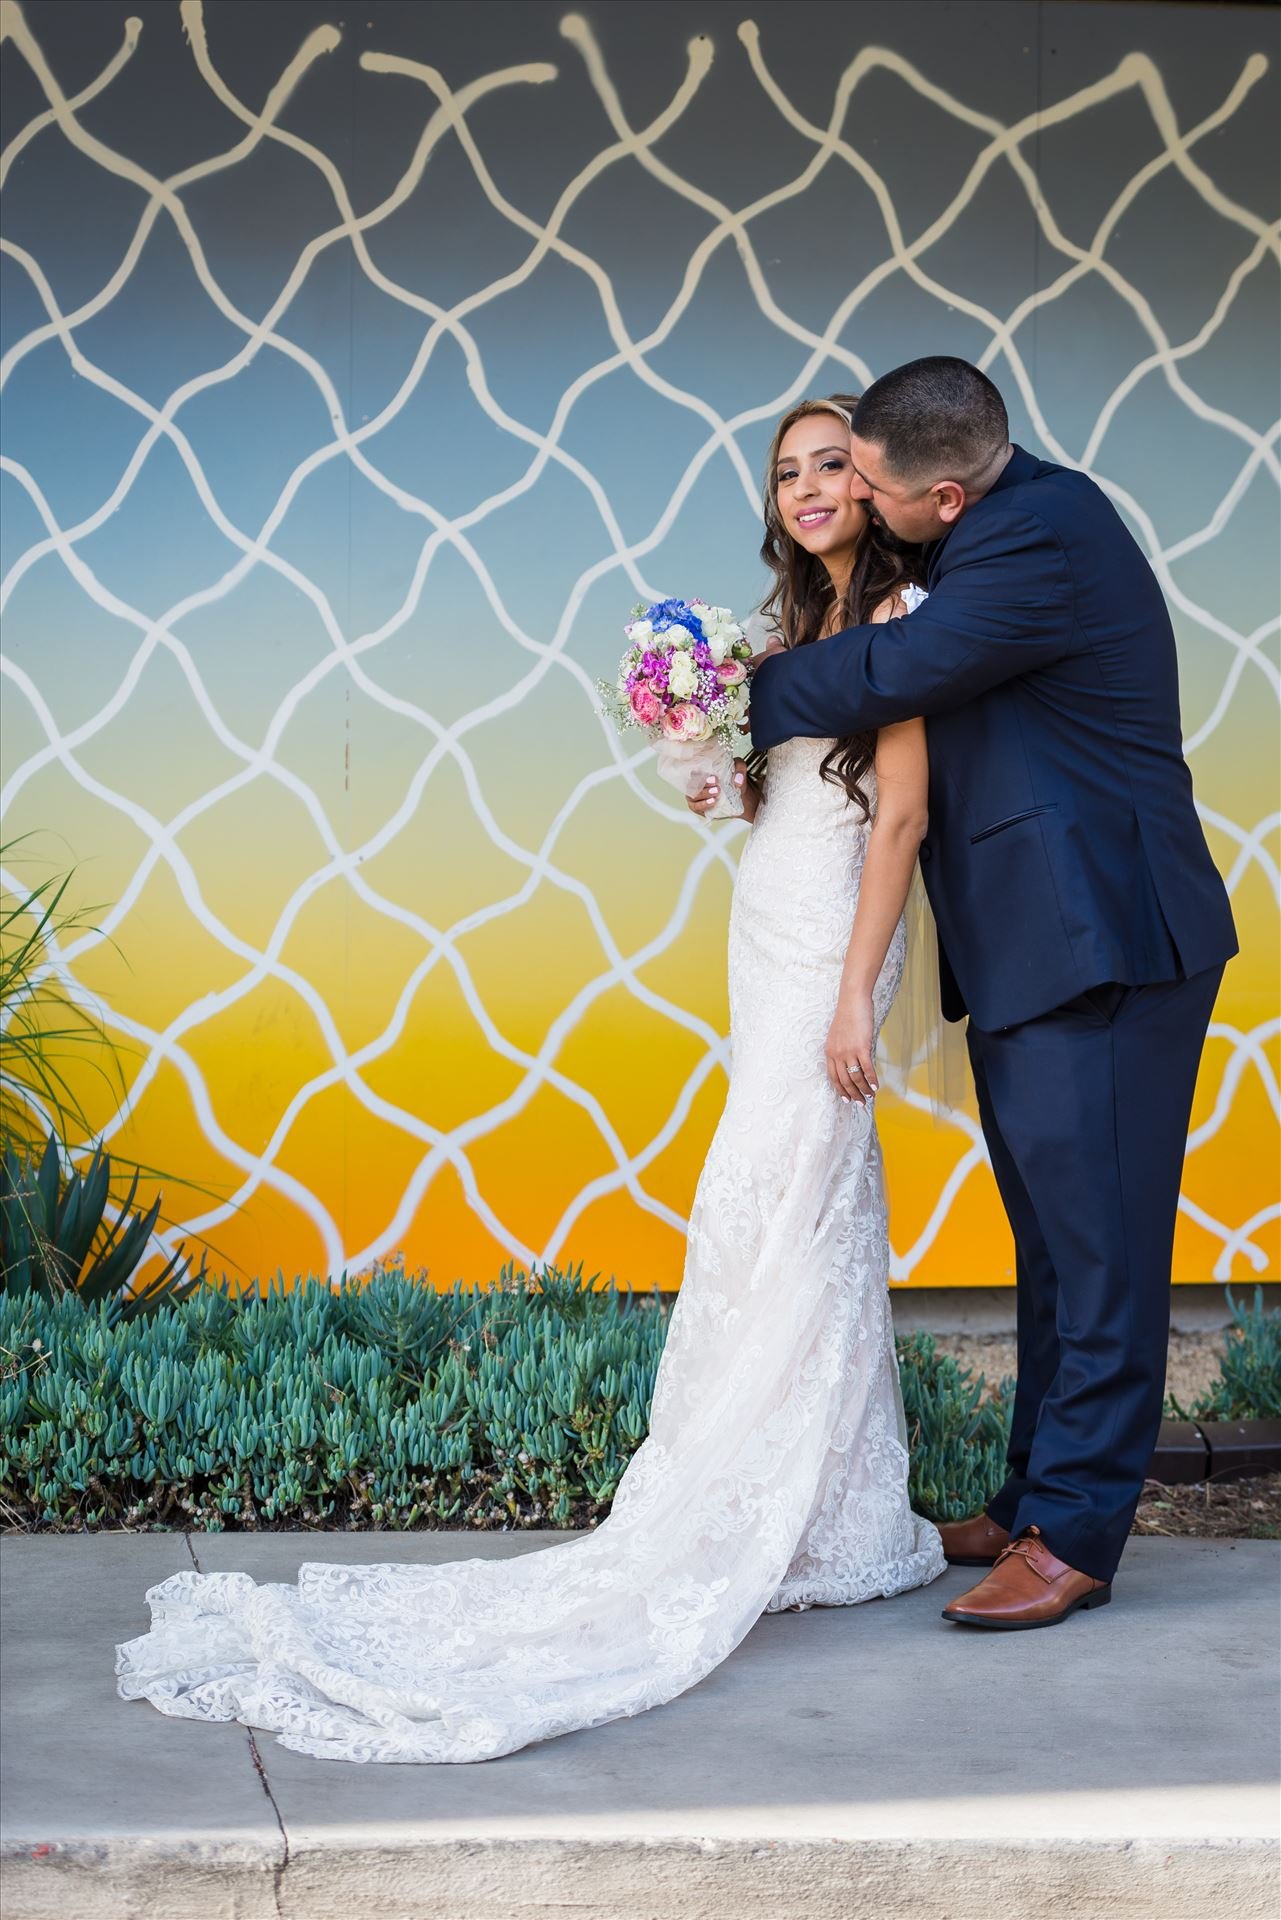 Ana and Juan 40 - Wedding photography at the Kimpton Goodland Hotel in Santa Barbara California by Mirror's Edge Photography.  Retro Bride and Groom by Art Wall by Sarah Williams